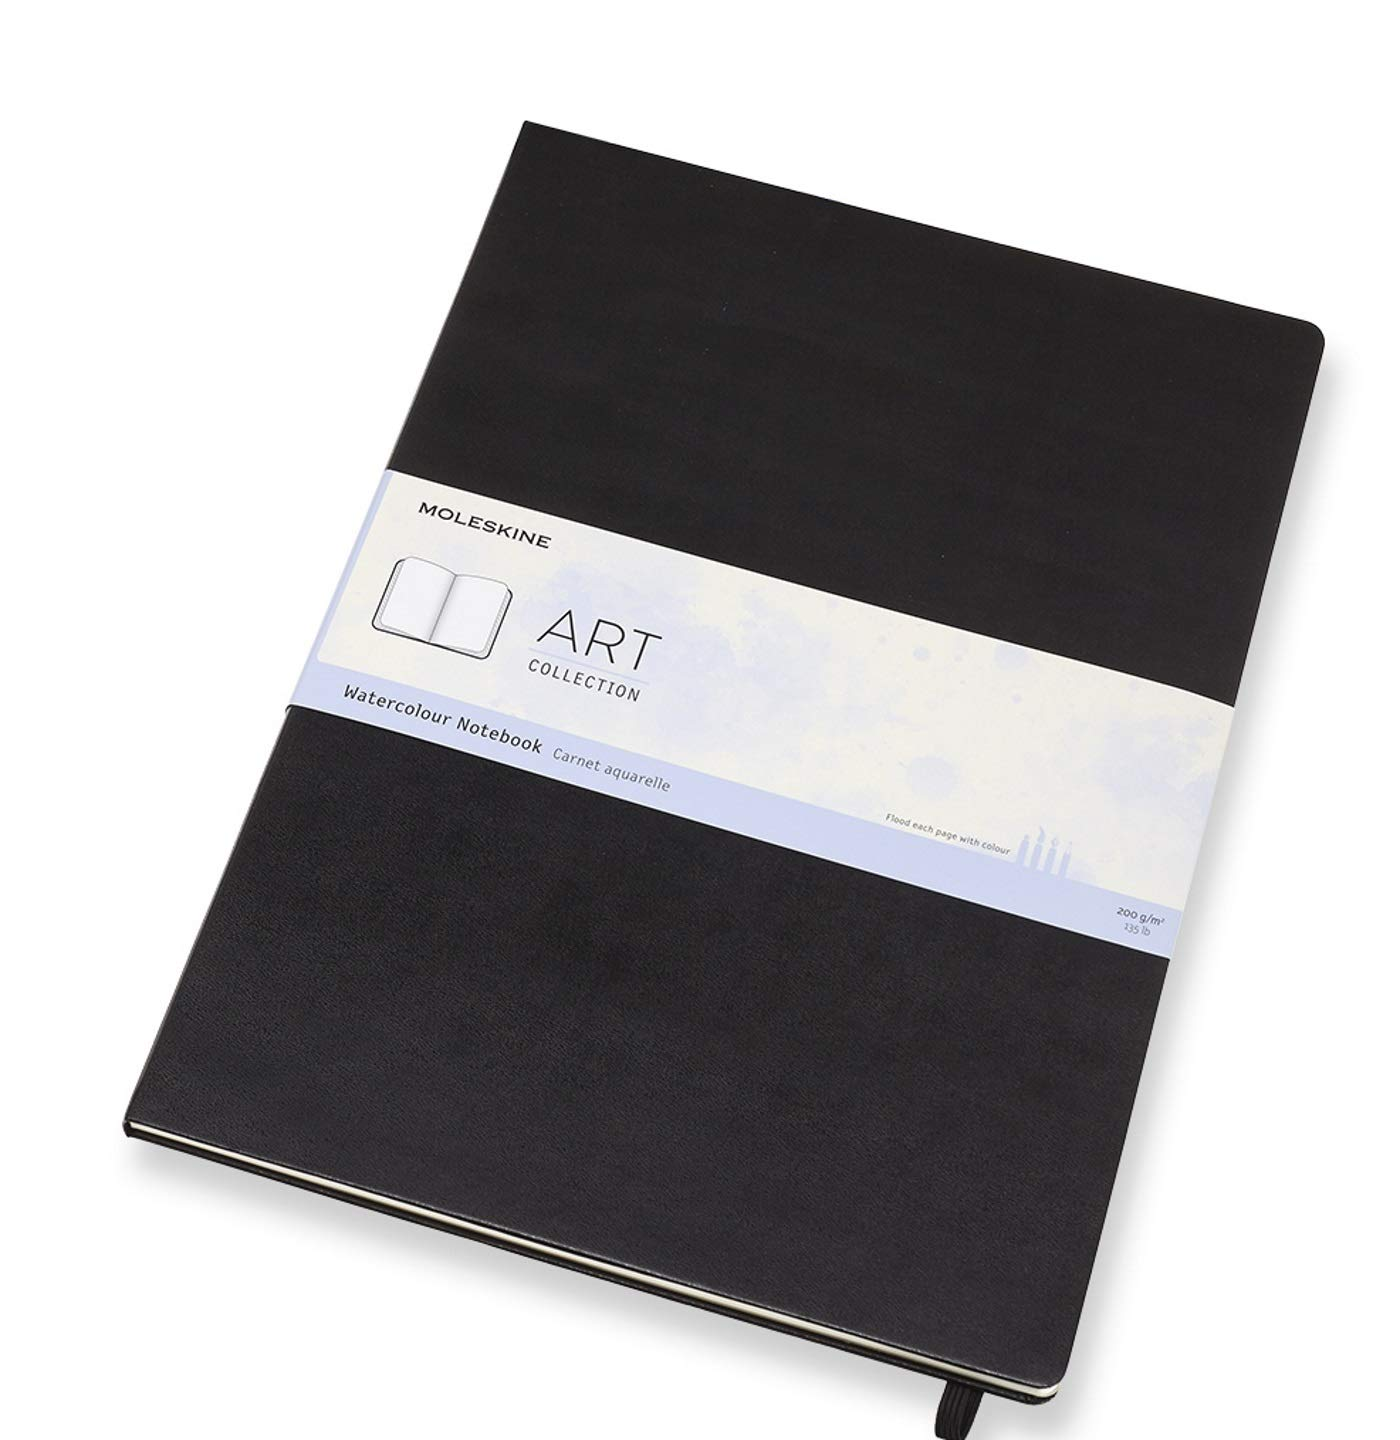 """Moleskine Art Watercolor Notebook, Hard Cover, A3 (11.75"""" x 16.5"""") Plain/Blank, Black, 60 Pages"""